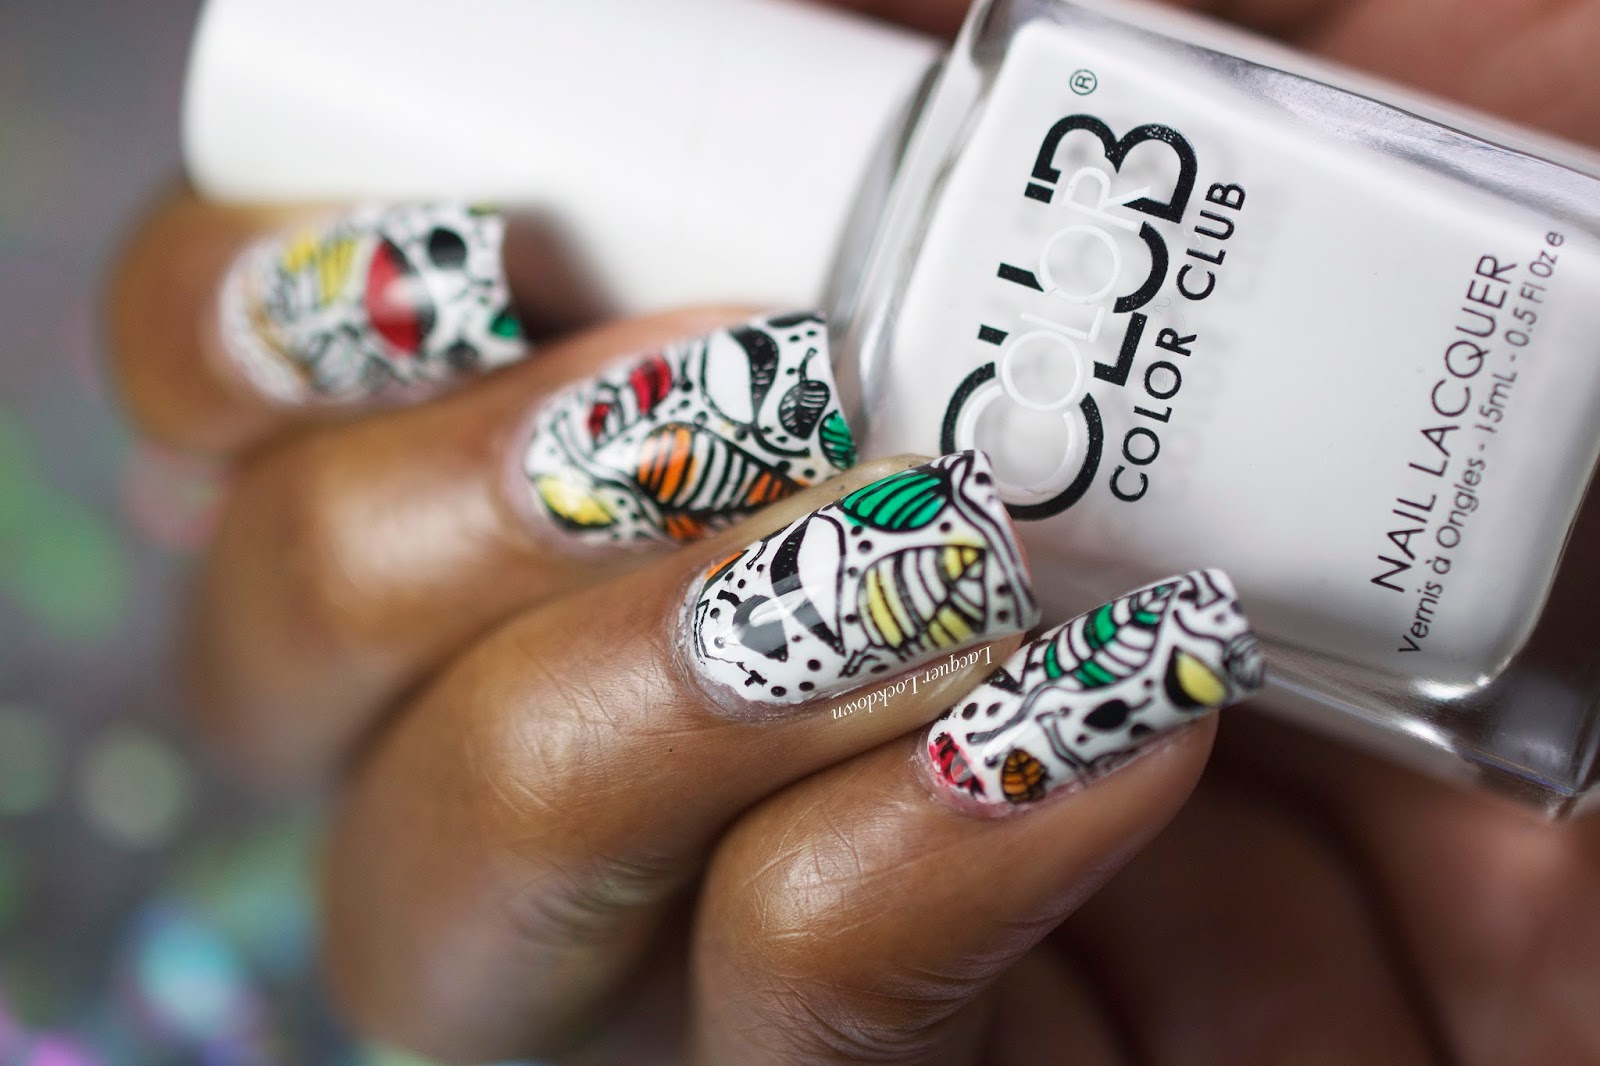 Lacquer Lockdown Uberchic Beauty Fall Nail Art Starbucks Cup Inspired